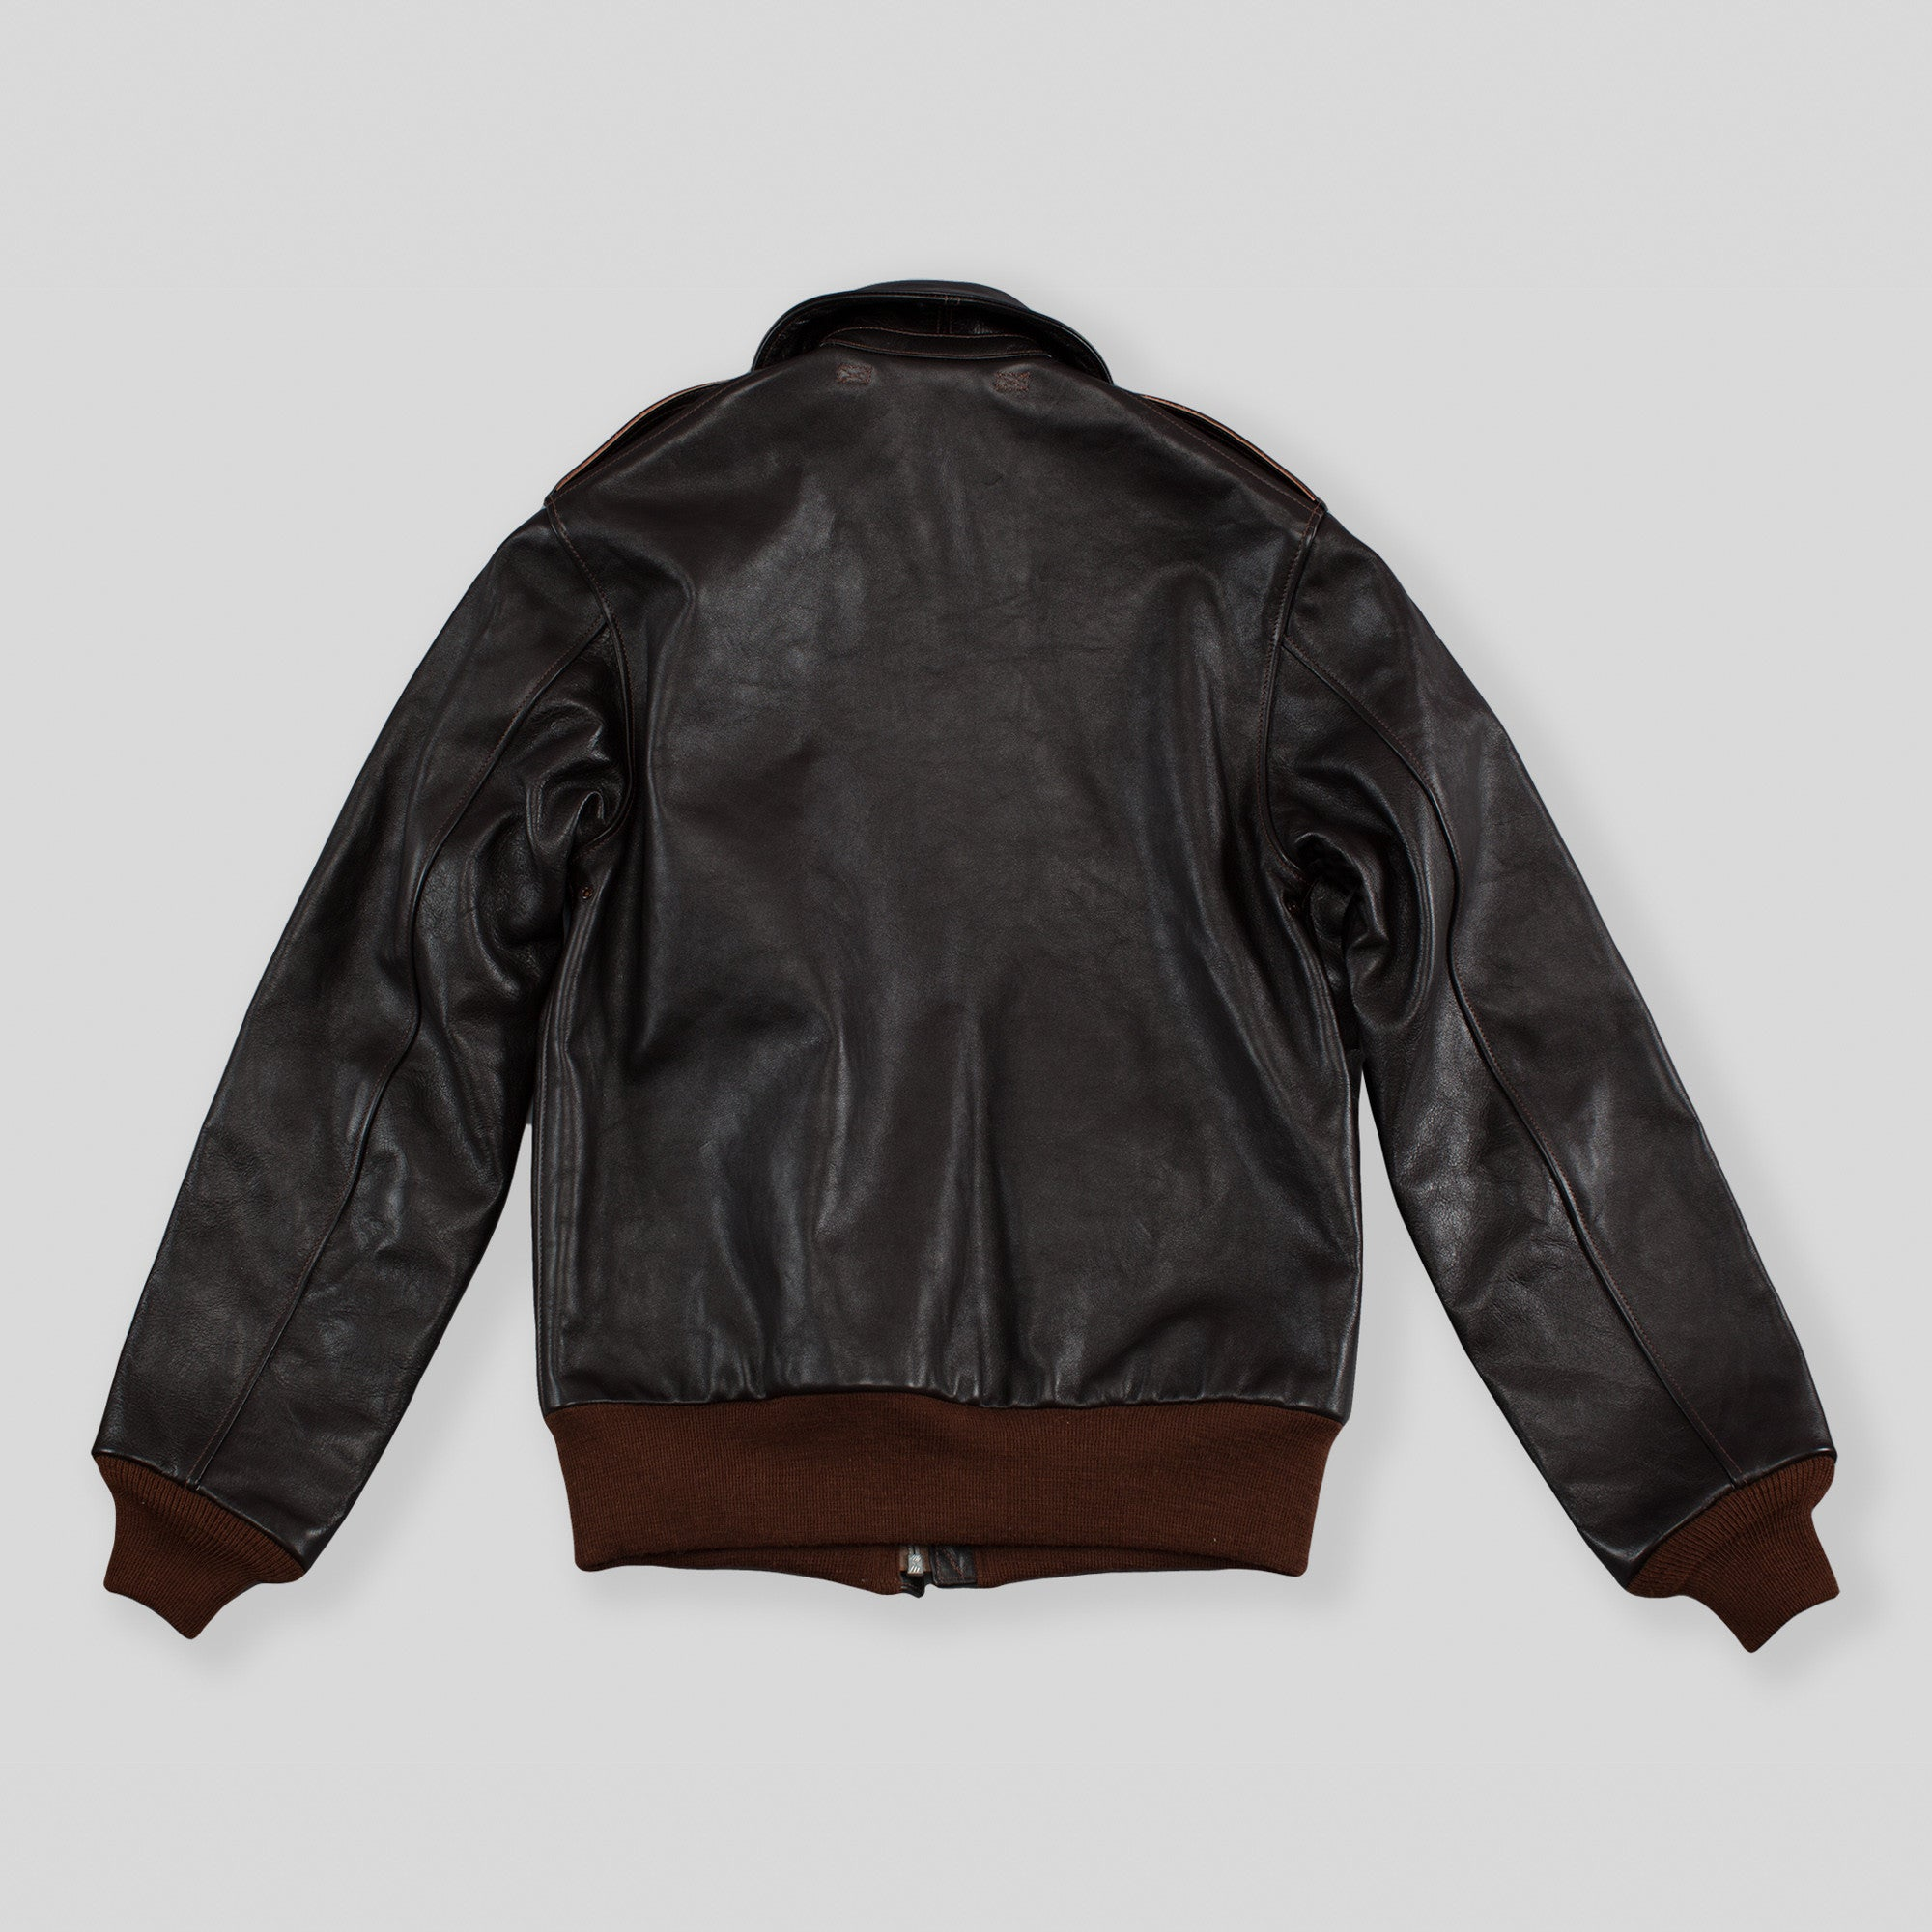 The Real McCoy's Type A-2 Leather Jacket